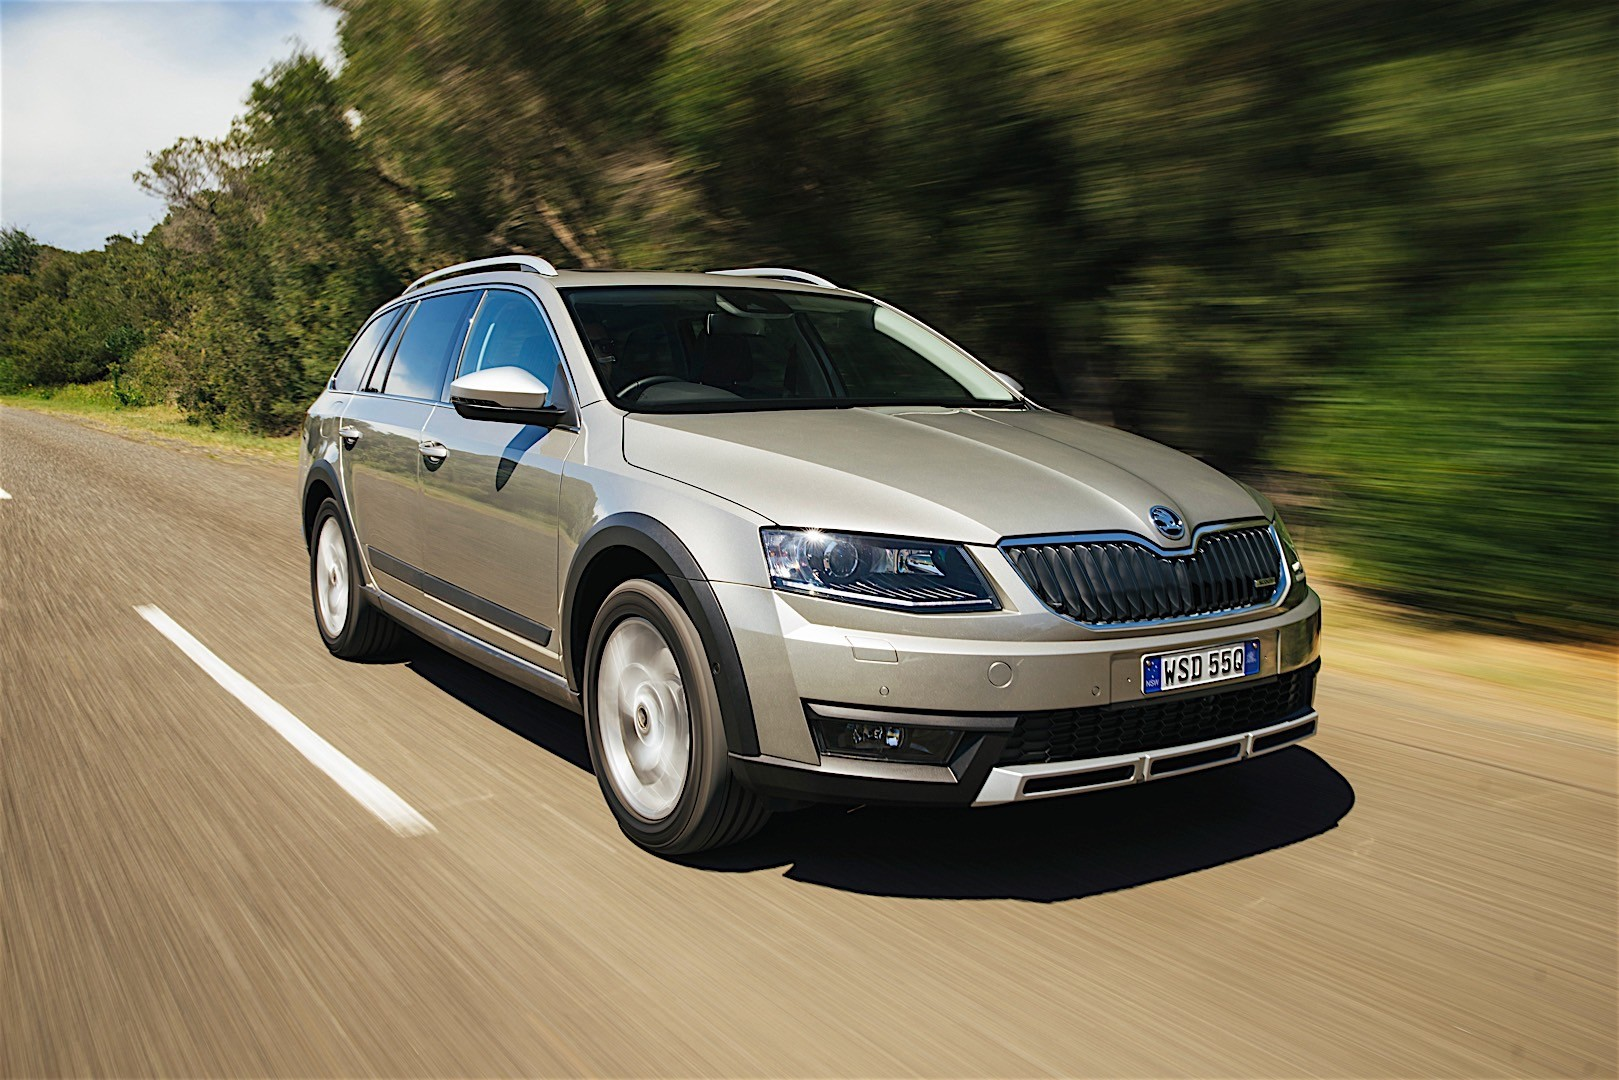 skoda octavia scout specs 2015 2016 2017 2018 autoevolution. Black Bedroom Furniture Sets. Home Design Ideas